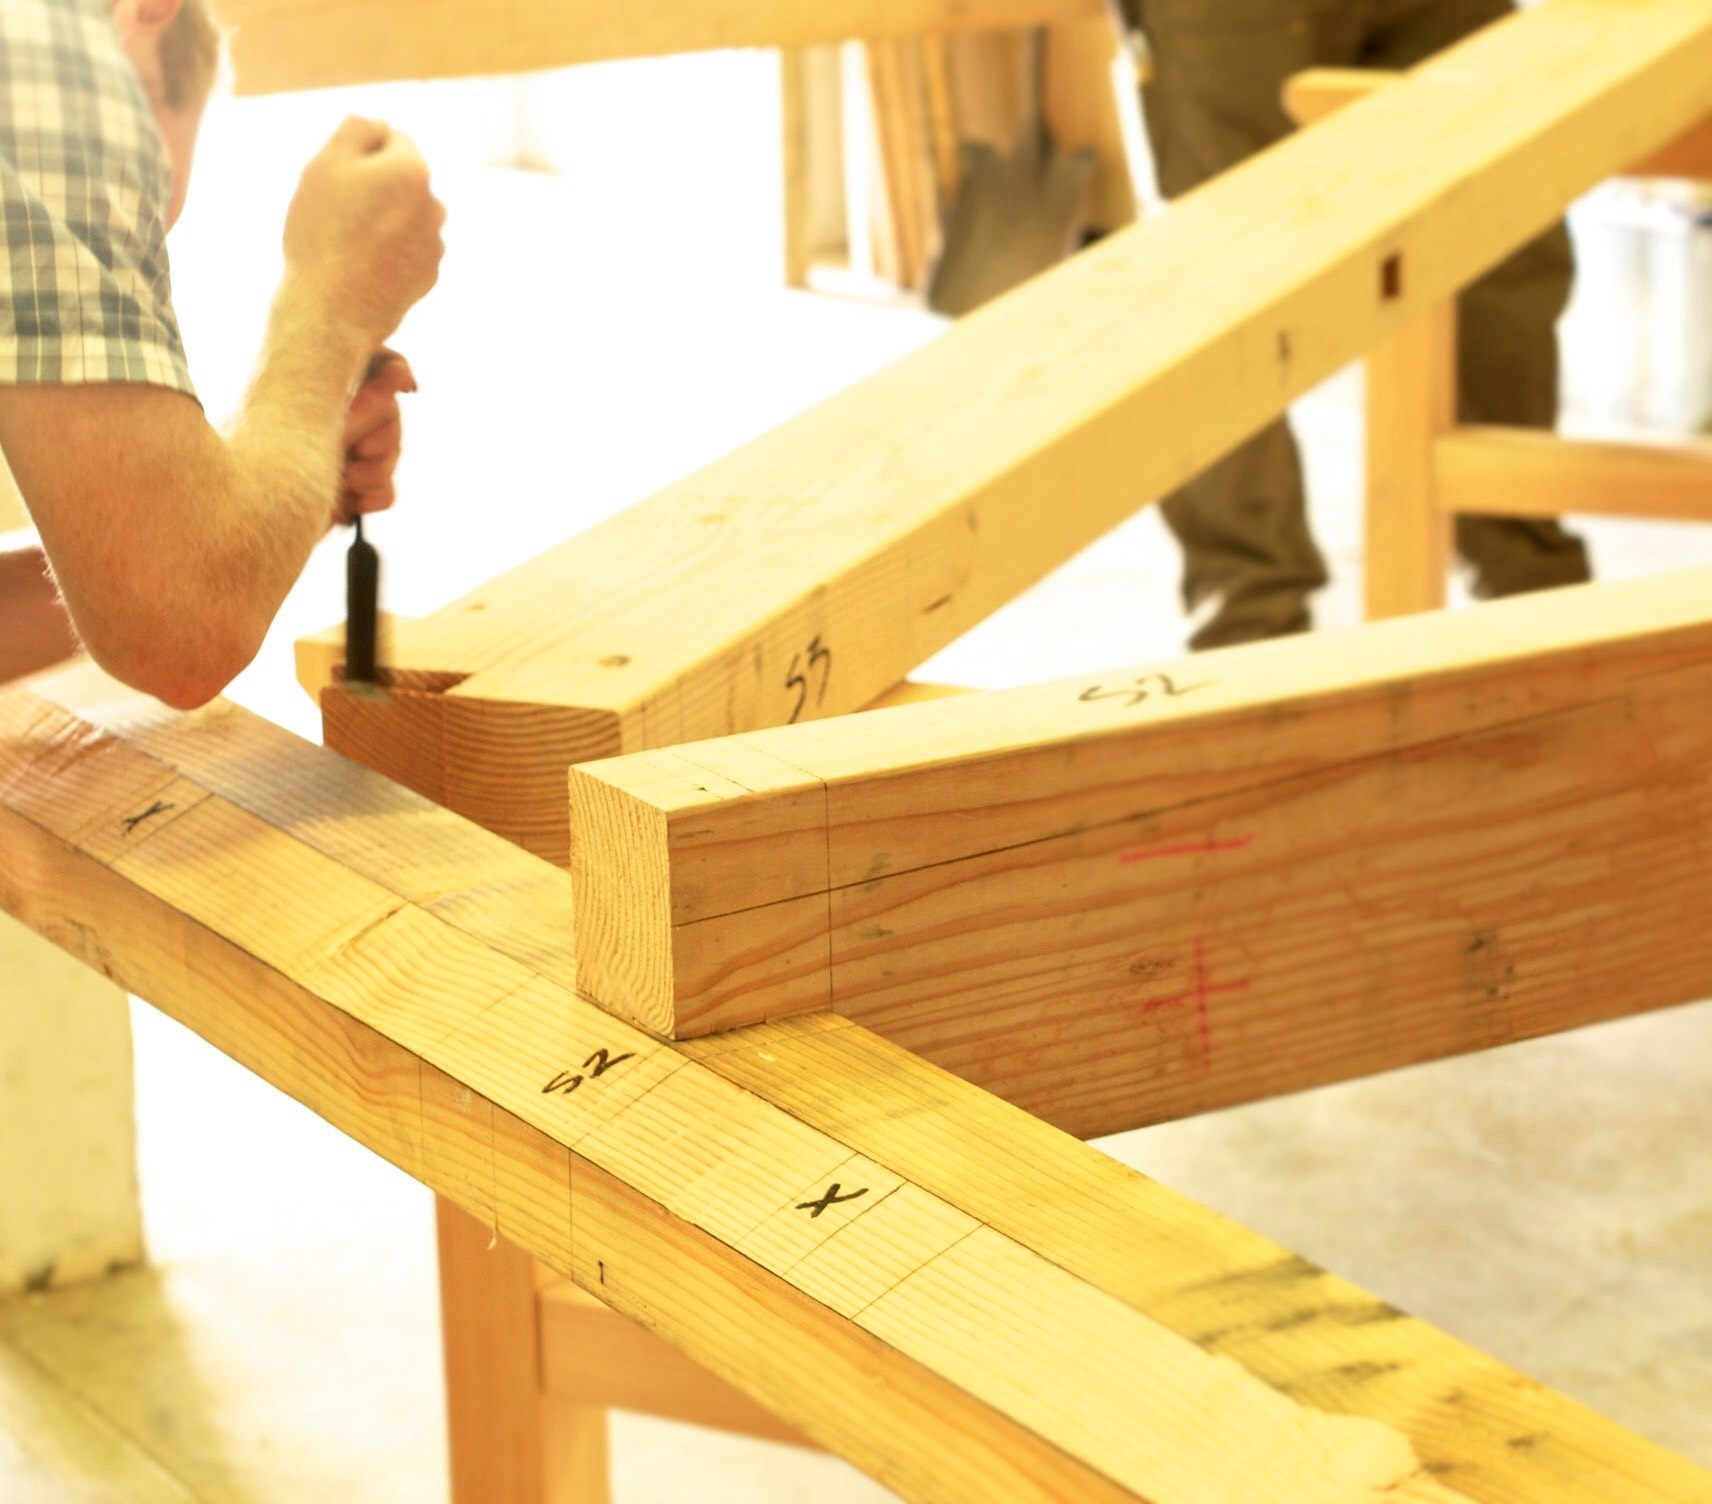 dry fitting the timber frame